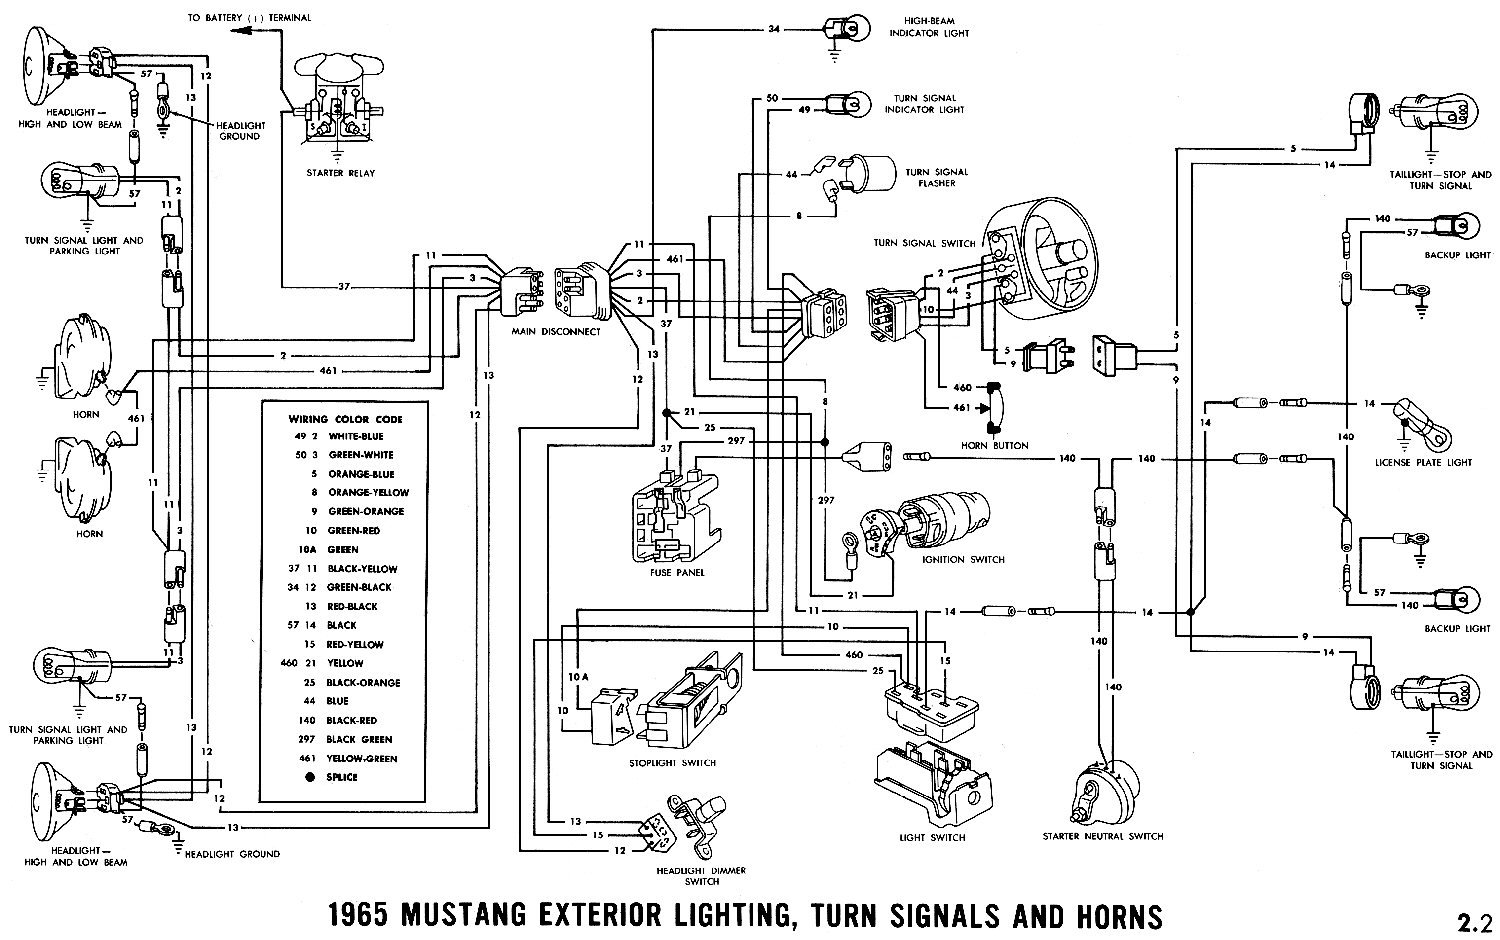 57 chevy wiring diagram wiring diagram and schematic design no fuel sender wire trifive 1955 chevy 1956 1957